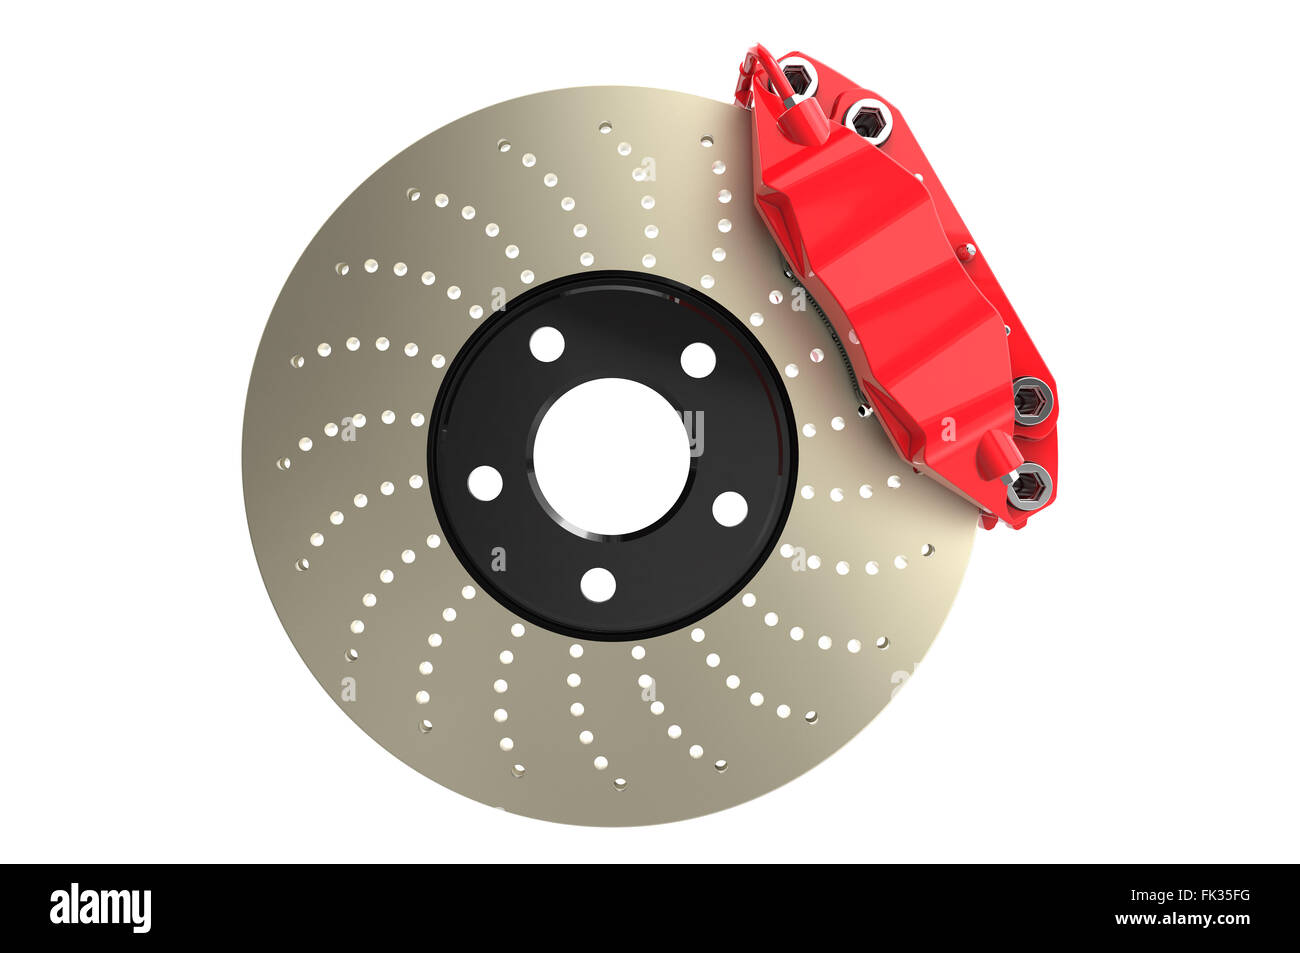 Brake disc and red caliper from a racing car isolated on white background - Stock Image